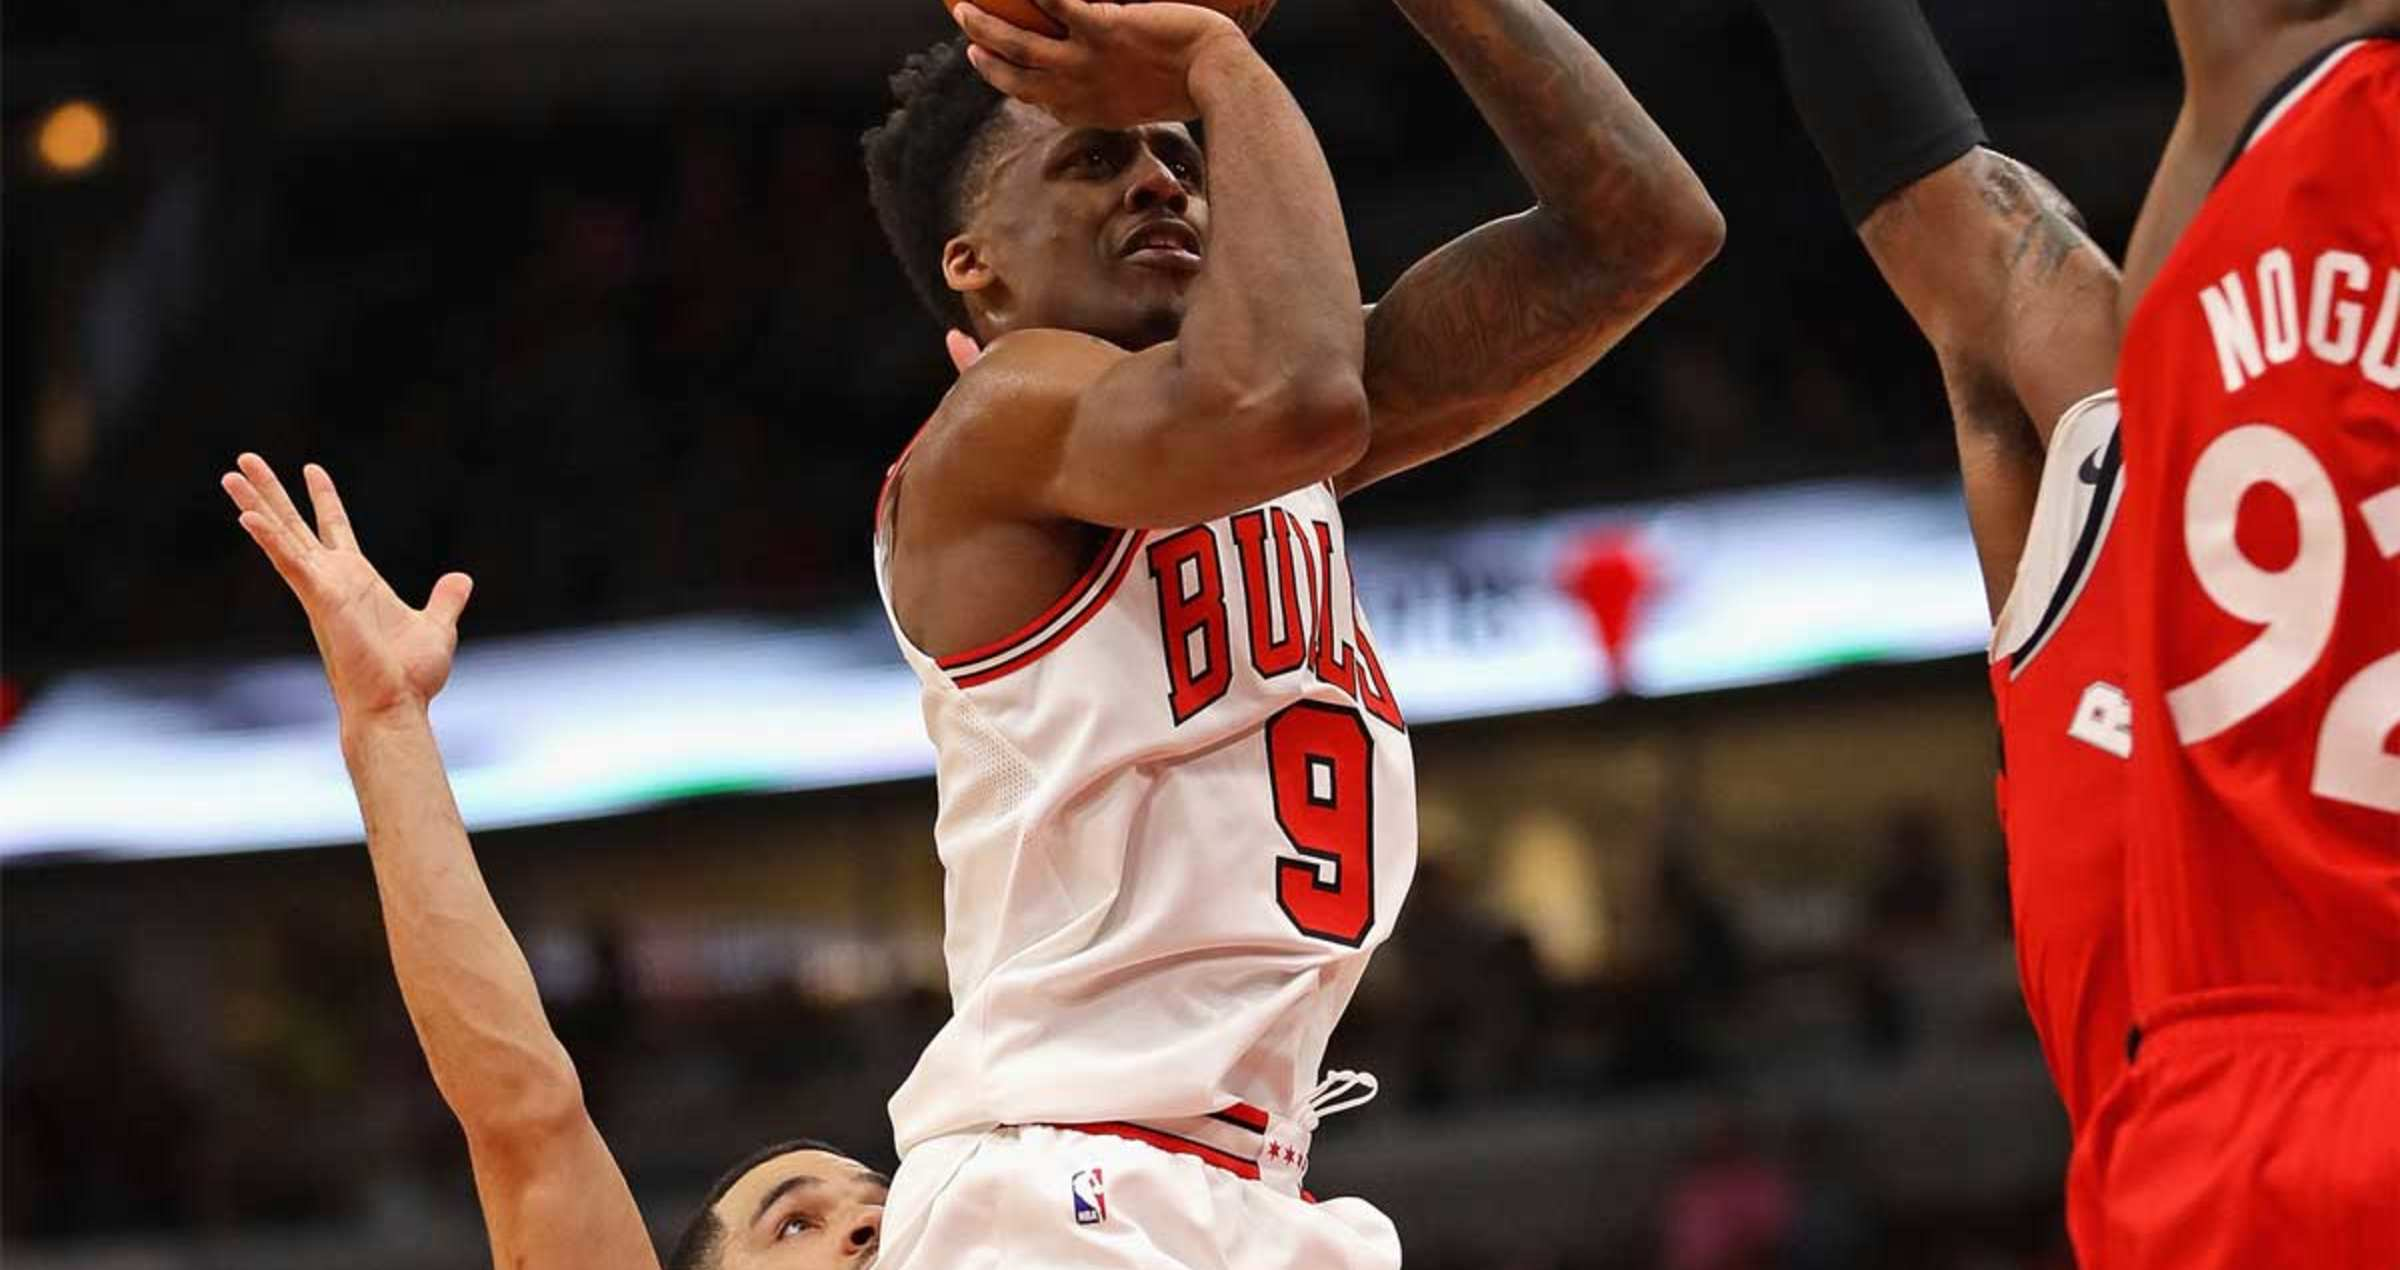 Antonio Blakeney #9 of the Chicago Bulls puts up a shot against Lucas Nogueira #92 of the Toronto Raptors during a preseason game at the United Center on October 13, 2017 in Chicago, Illinois.